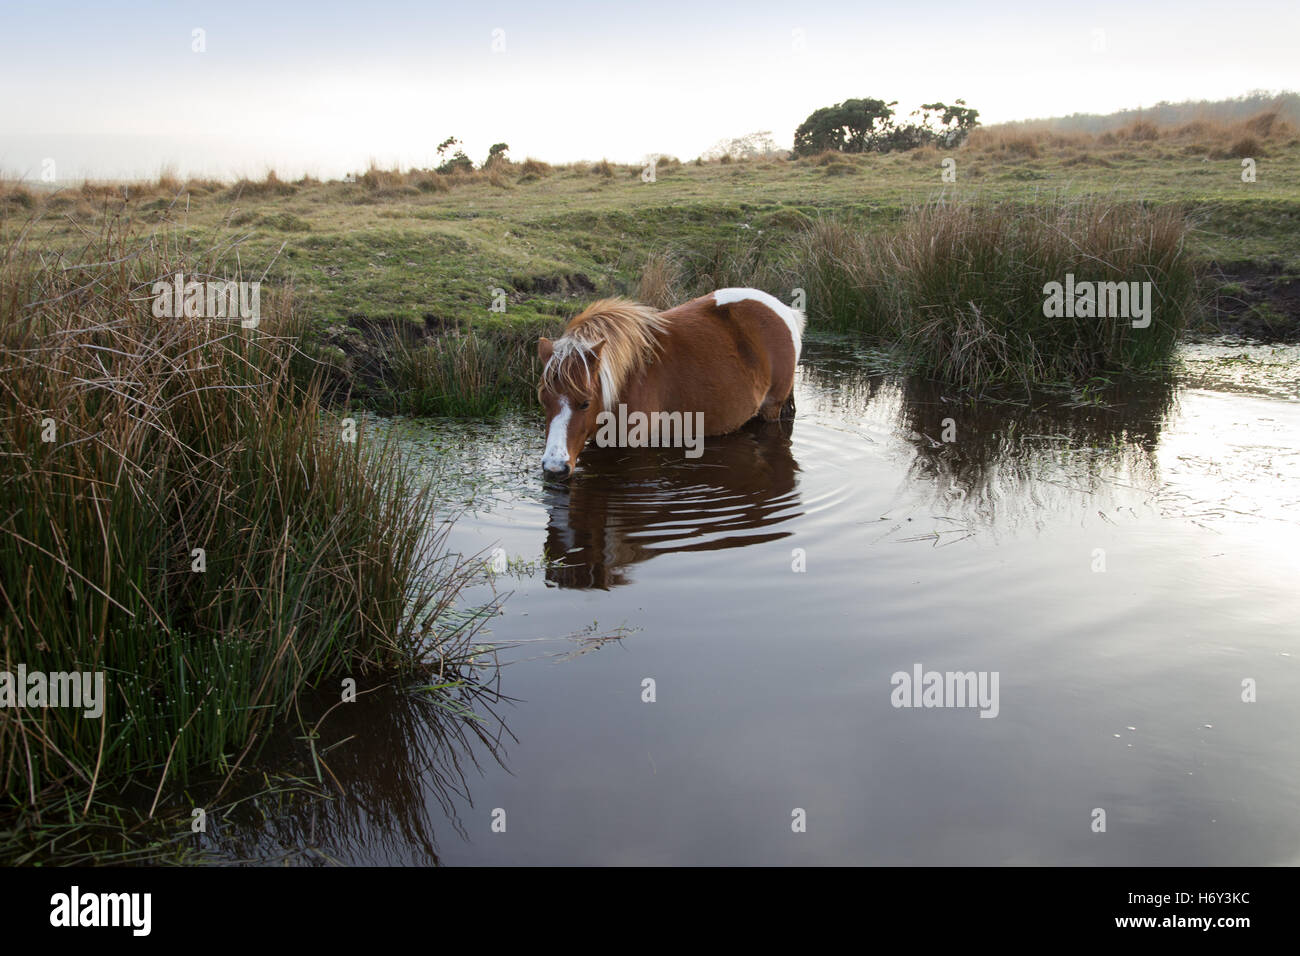 a-dartmoor-pony-eating-leaves-and-drinki